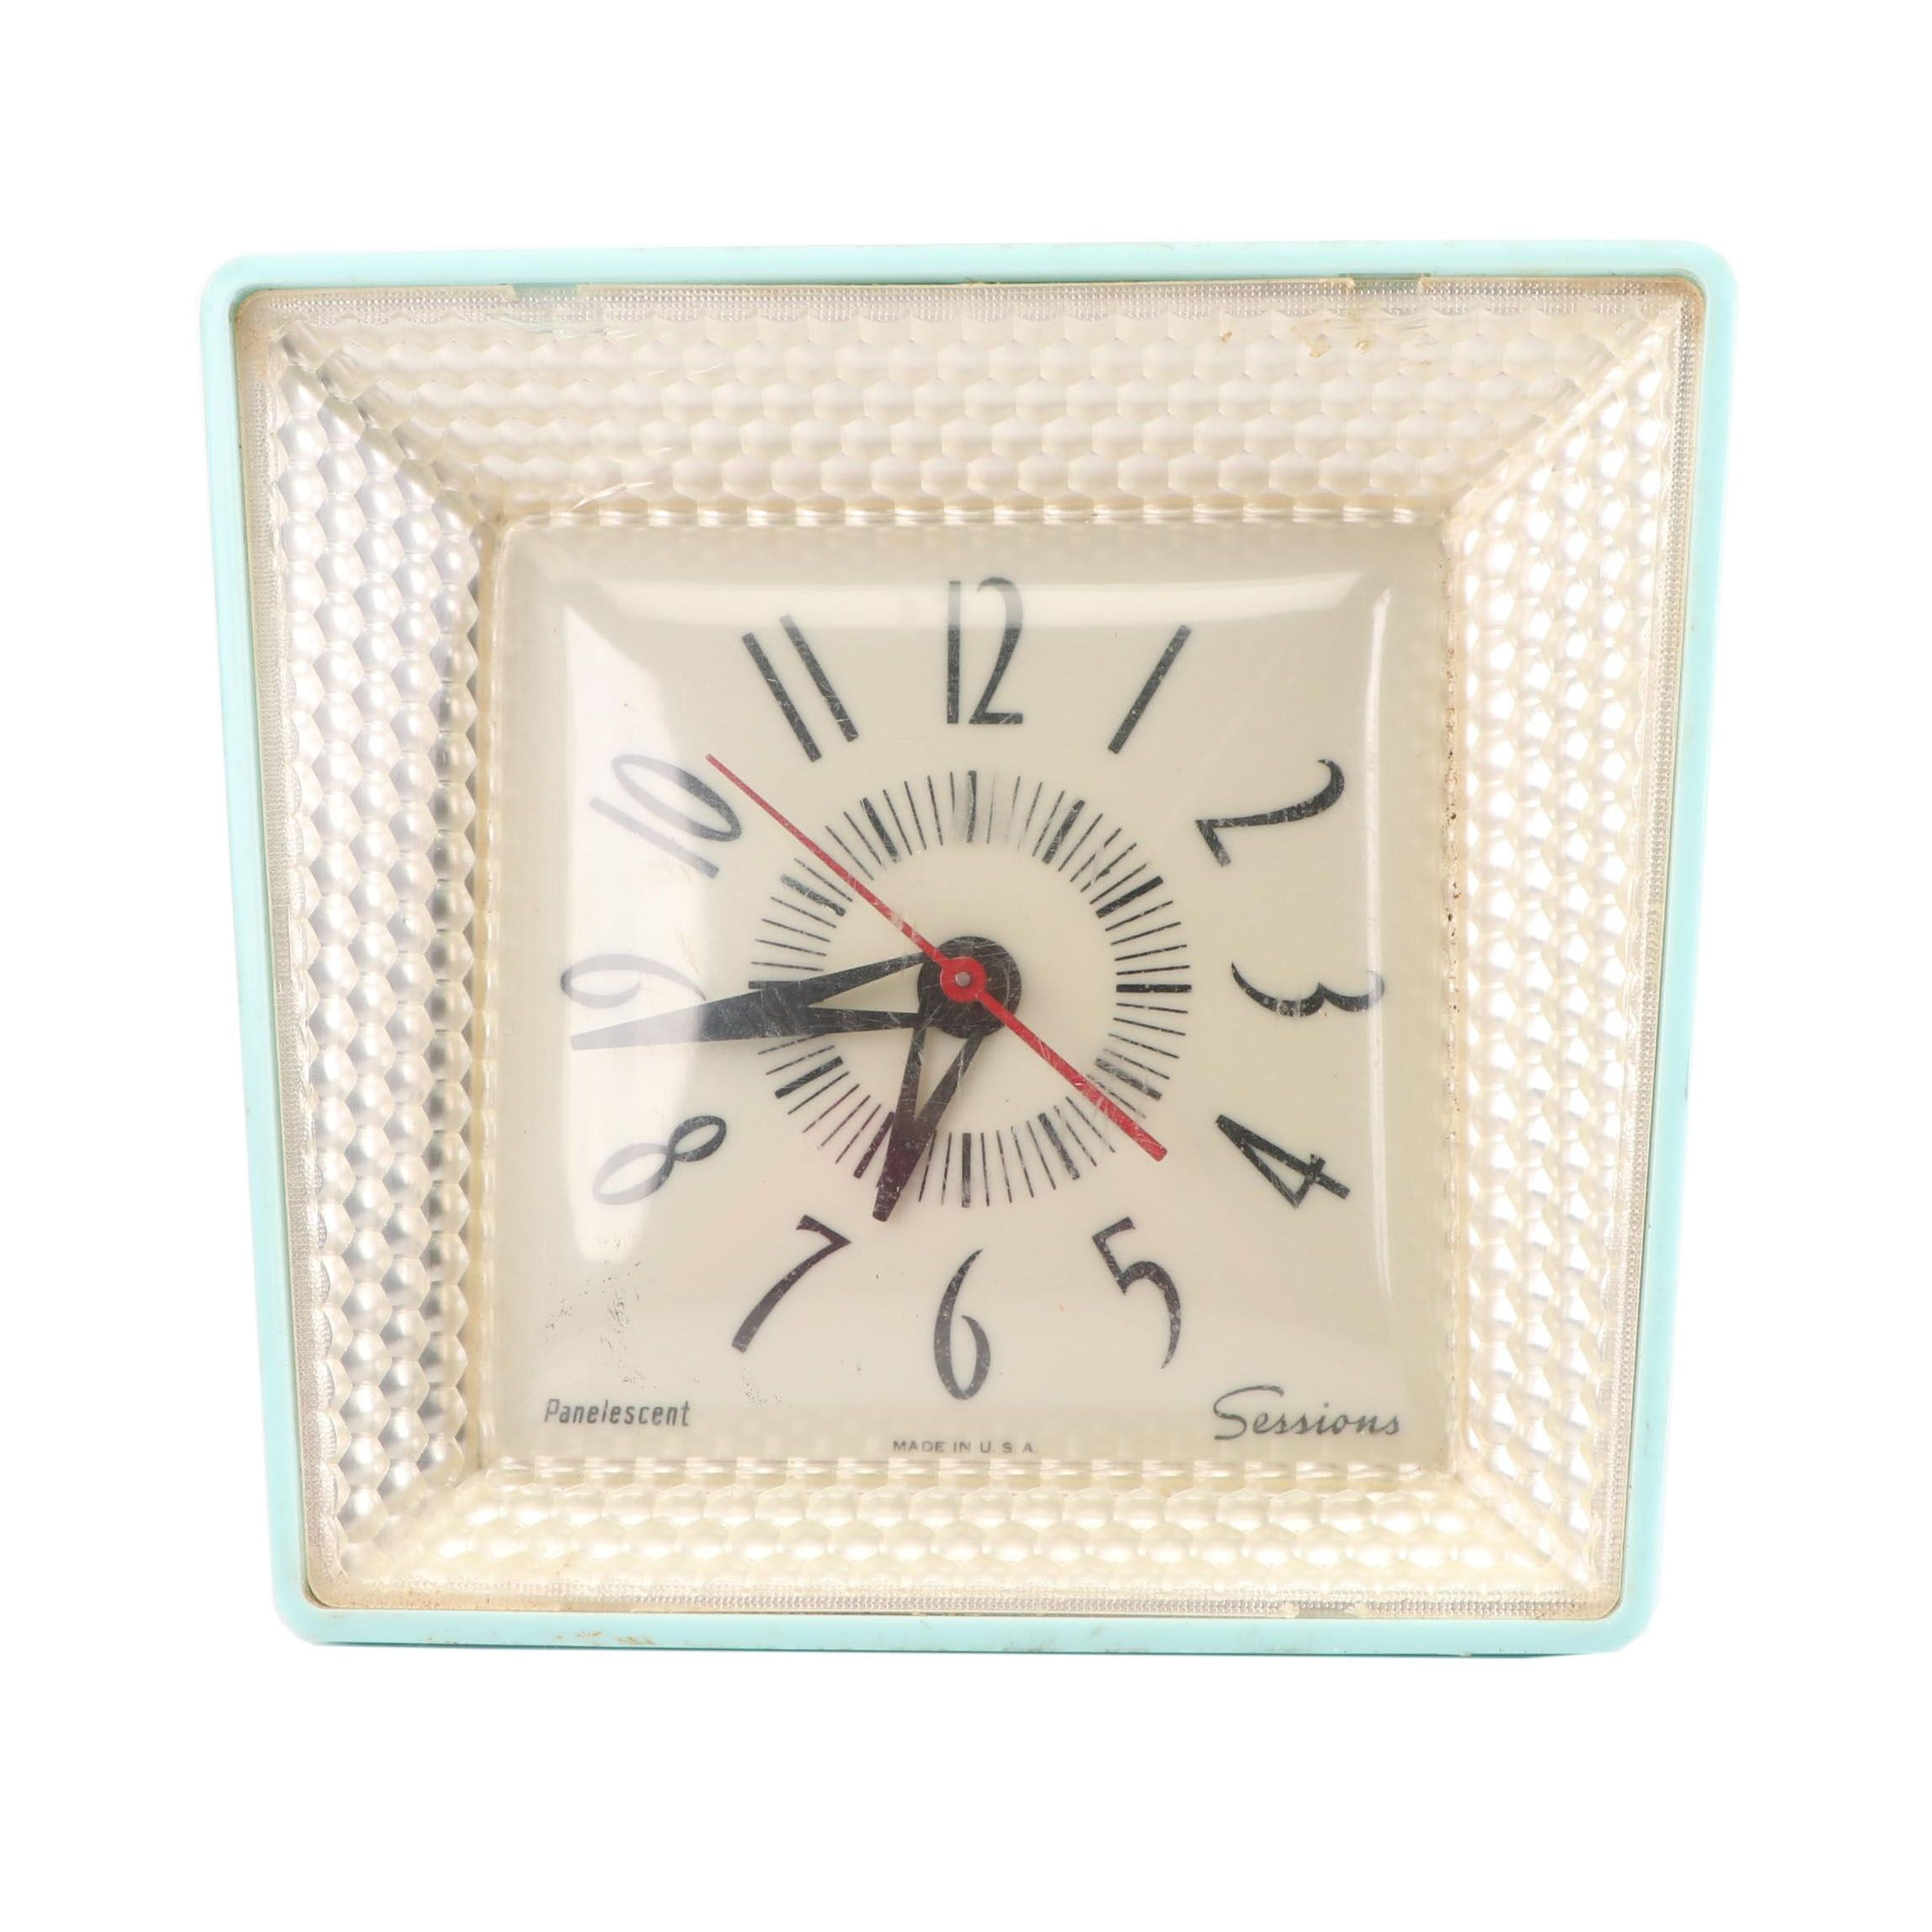 """Sessions """"Panelescent"""" Electric Wall Clock, Mid 20th Century"""